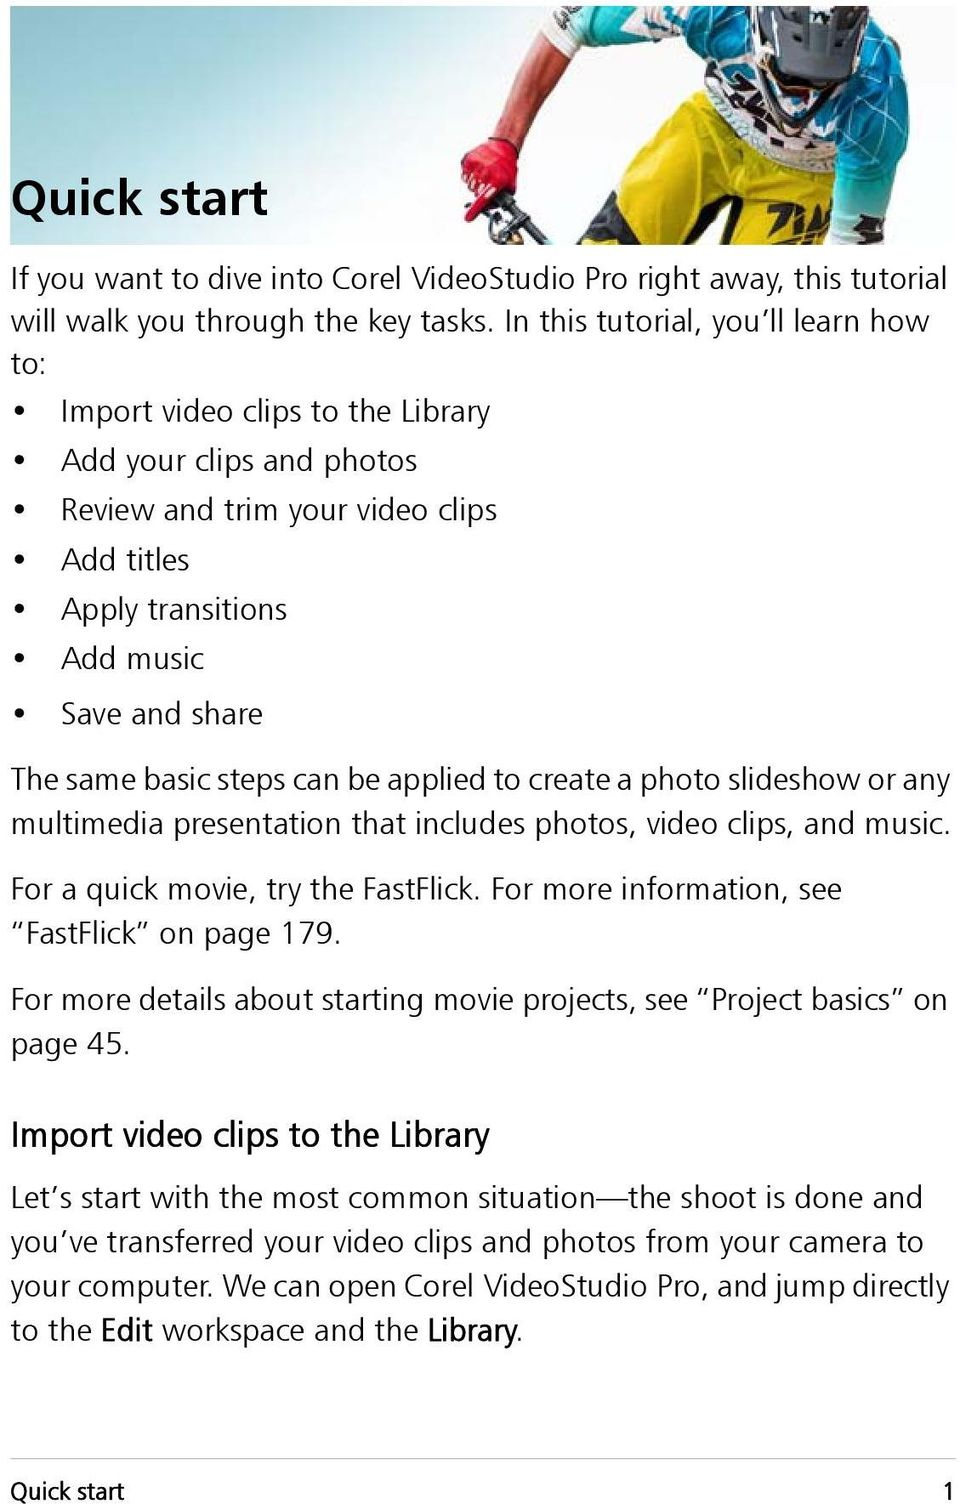 basic steps can be applied to create a photo slideshow or any multimedia presentation that includes photos, video clips, and music. For a quick movie, try the FastFlick.